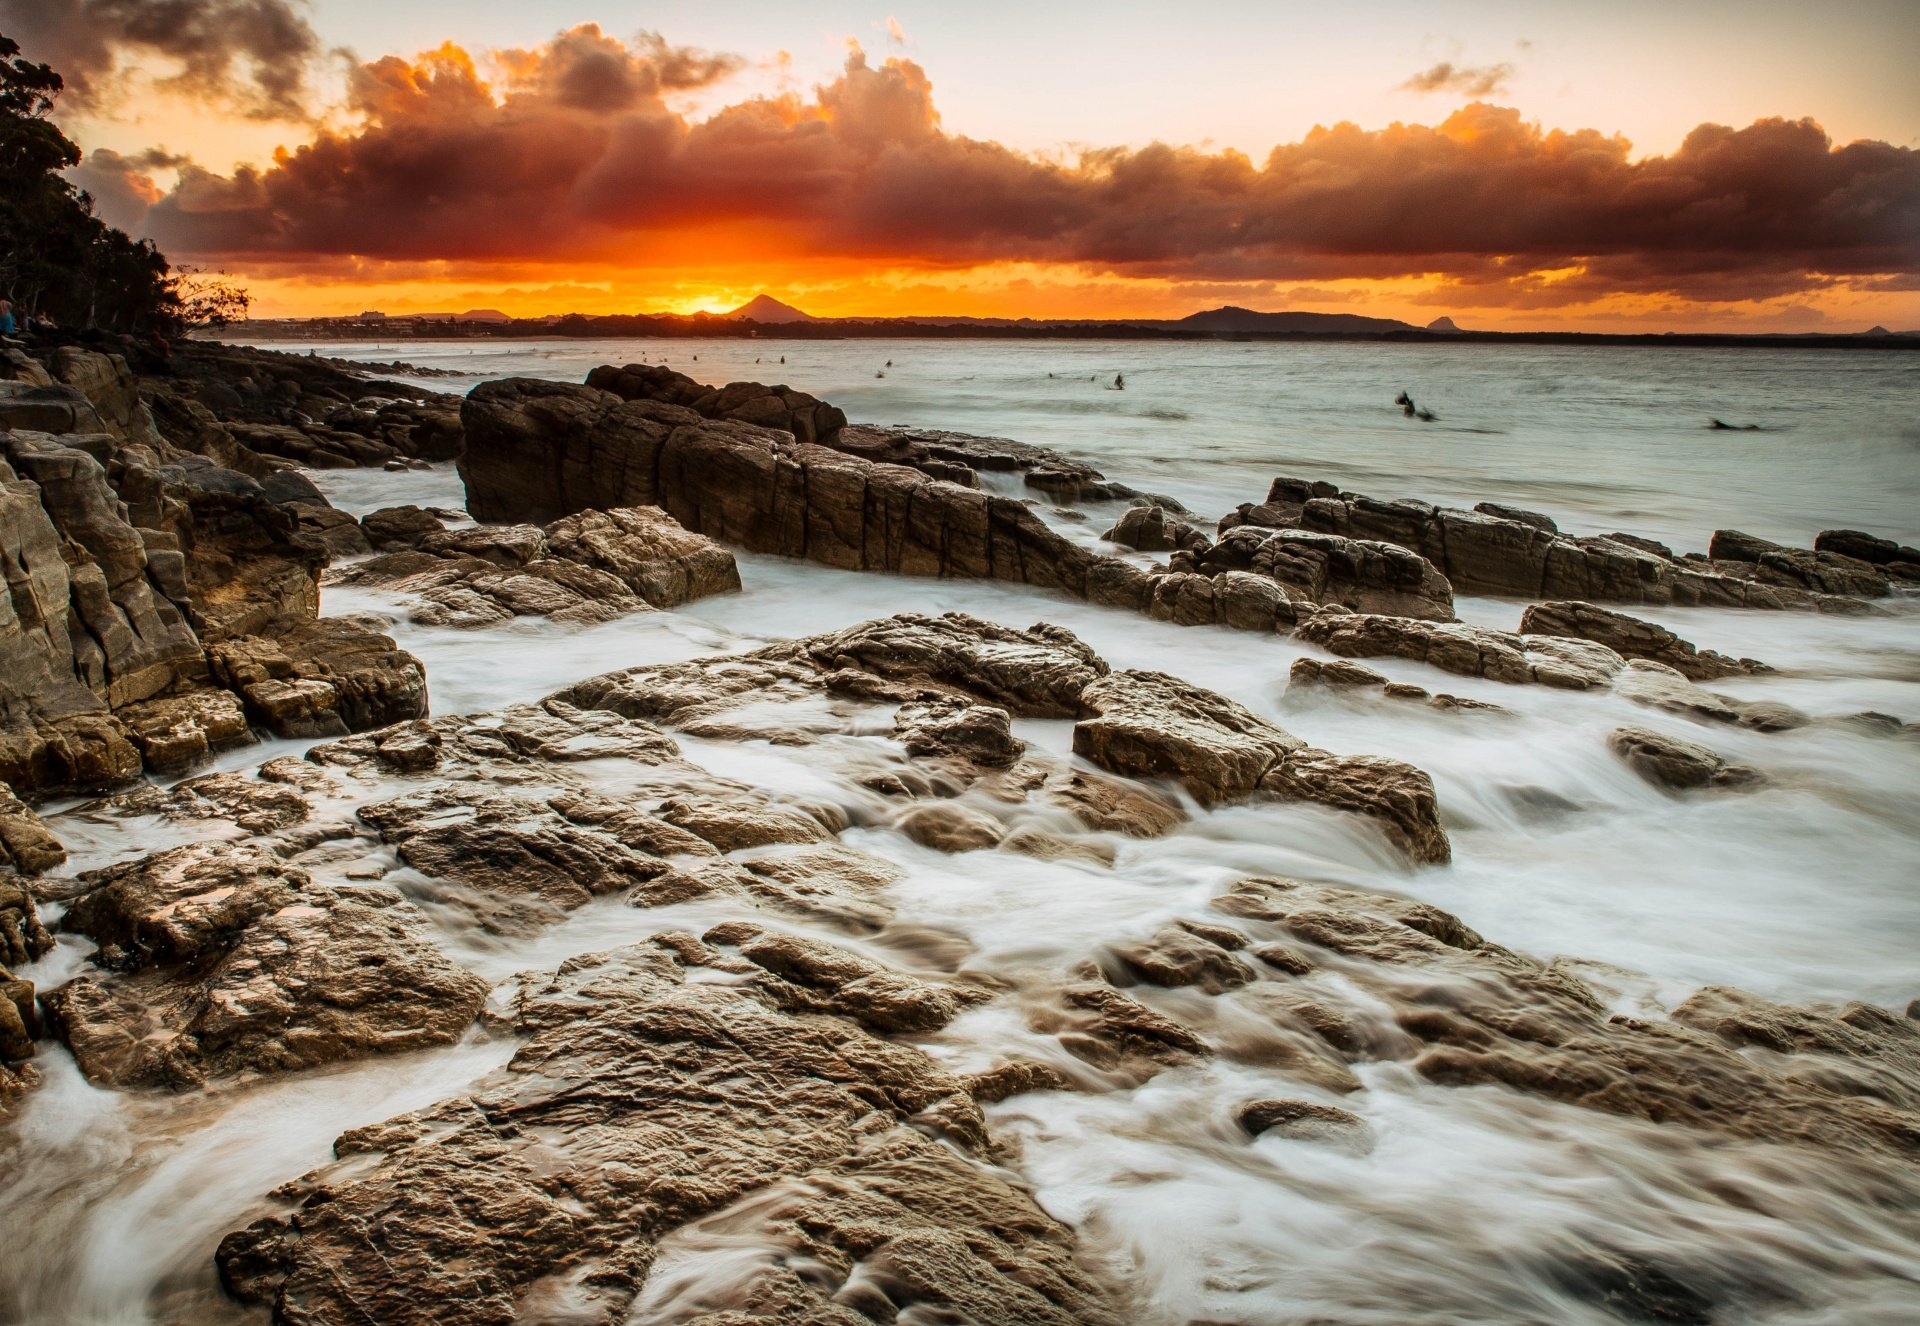 Liam Warton's photo of Boiling Pot